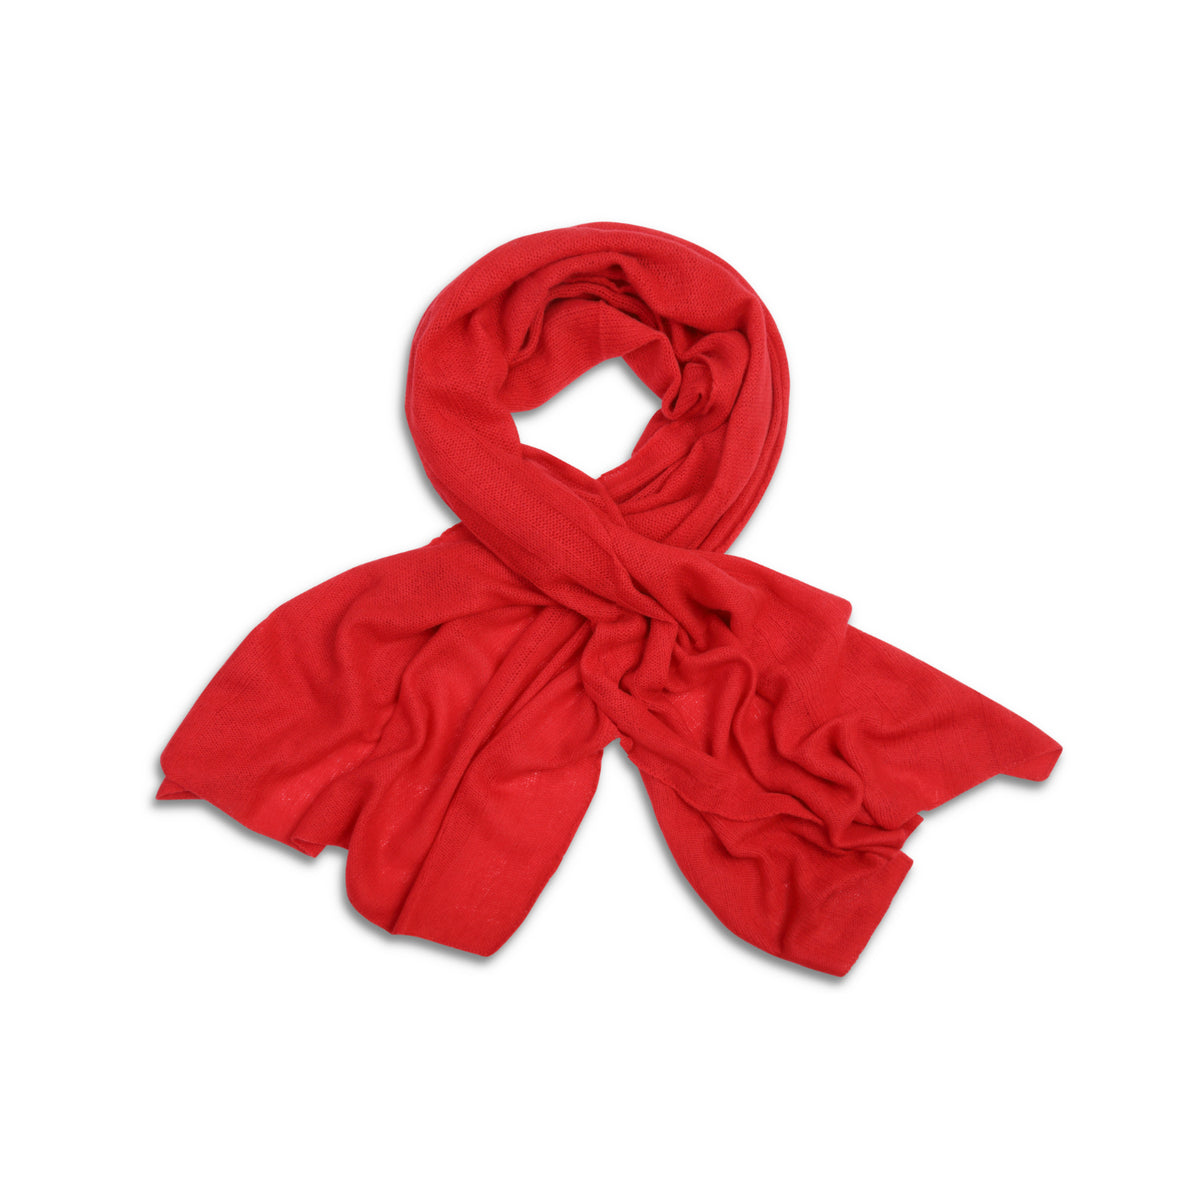 Red | Knitted Cashmere Stole | Knitted Cashmere Scarf | Shop at The Cashmere Choice | London